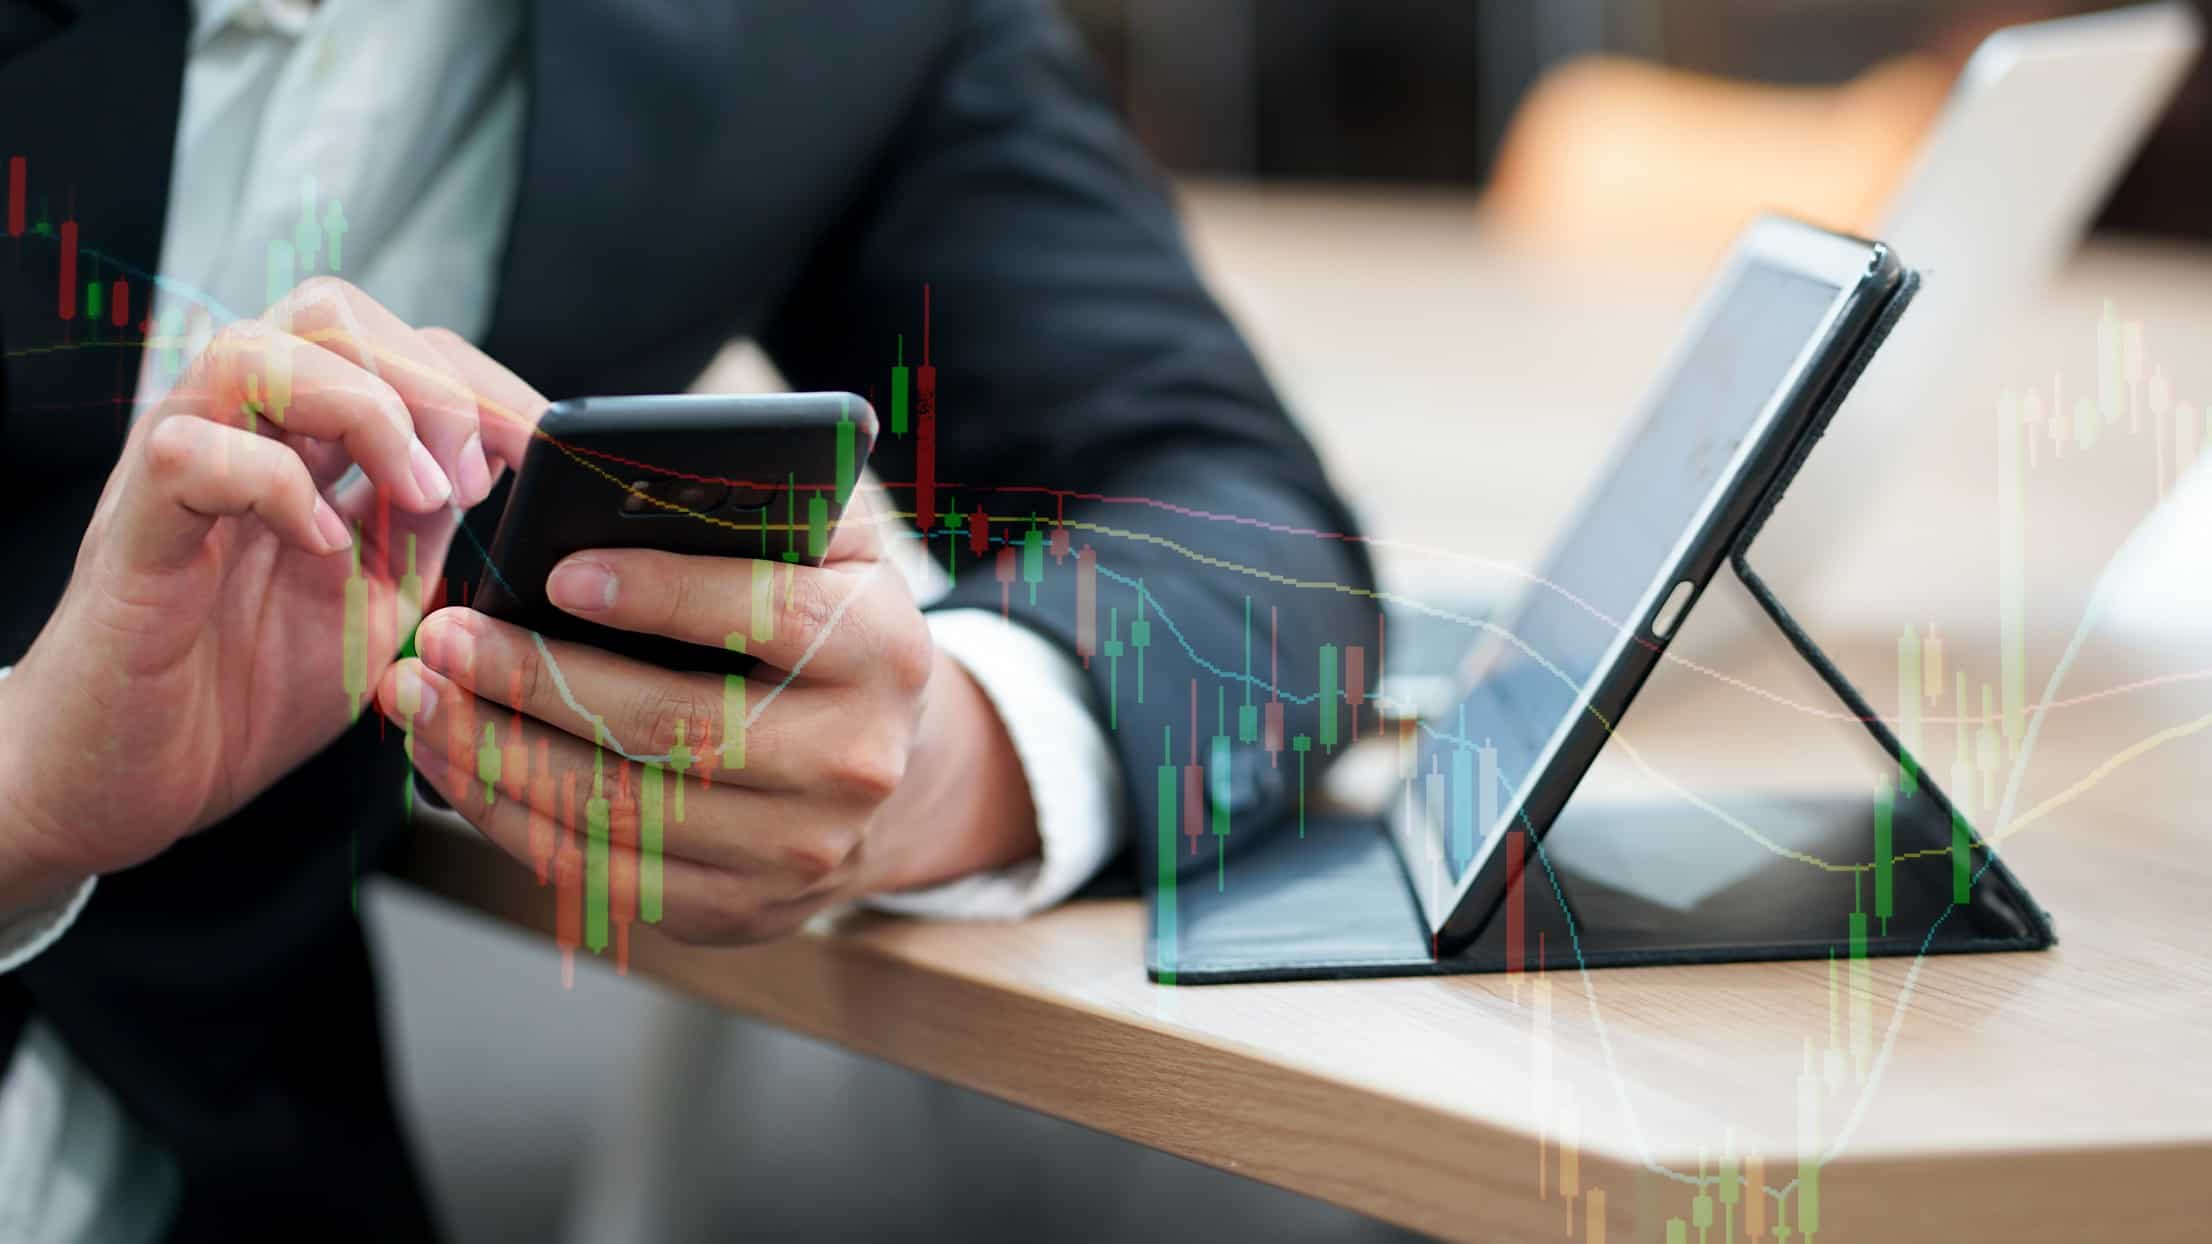 A share market investment manager monitors share price movements on his mobile phone and laptop